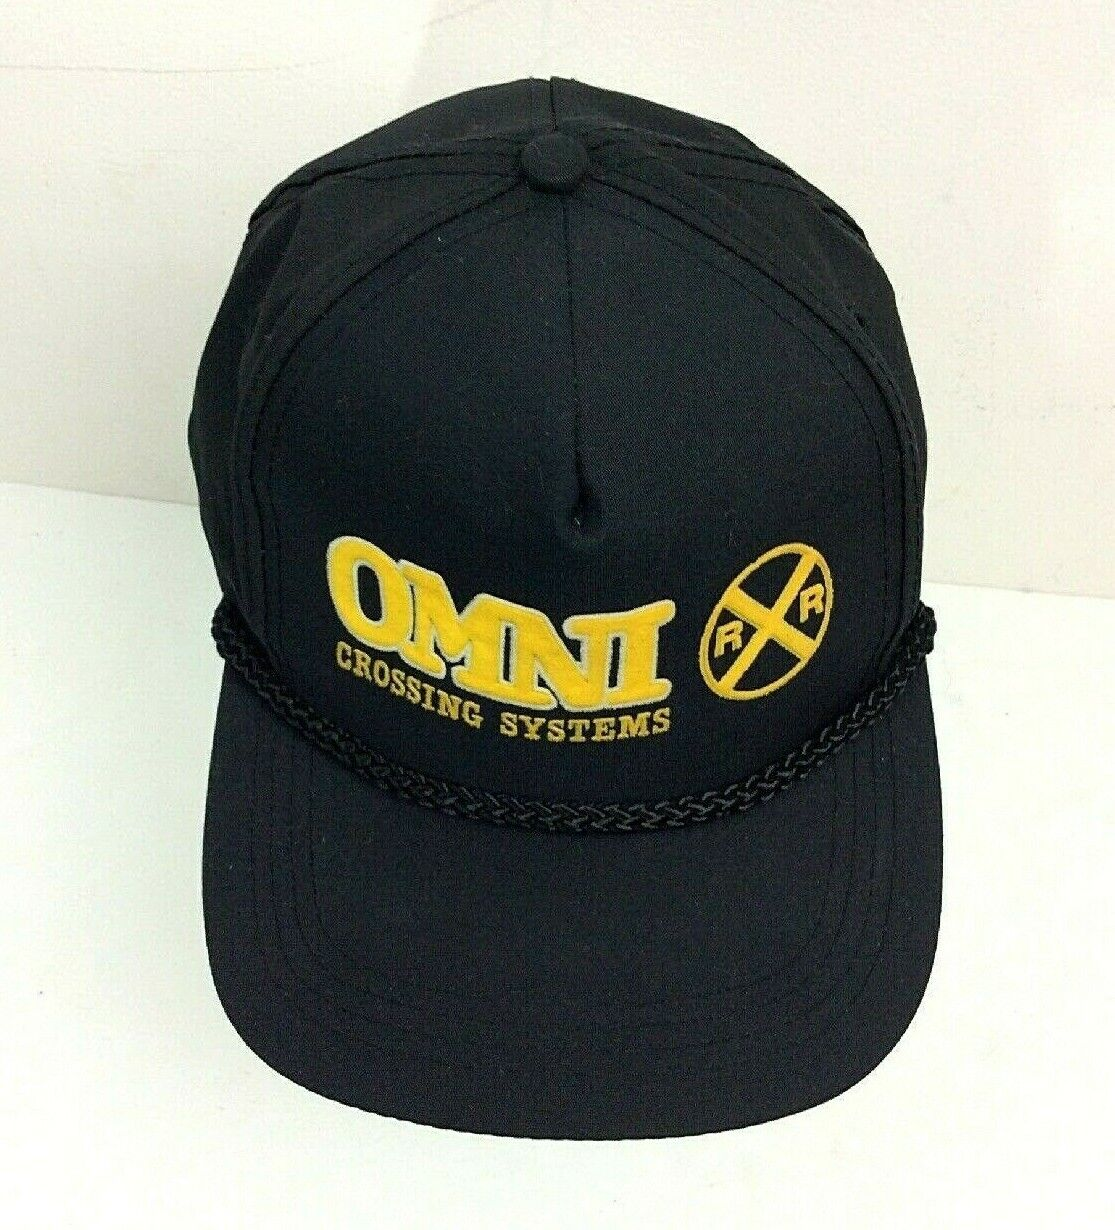 OMNI Crossing Systems Railroad Cap Hat Snap Back. Vintage new old stock